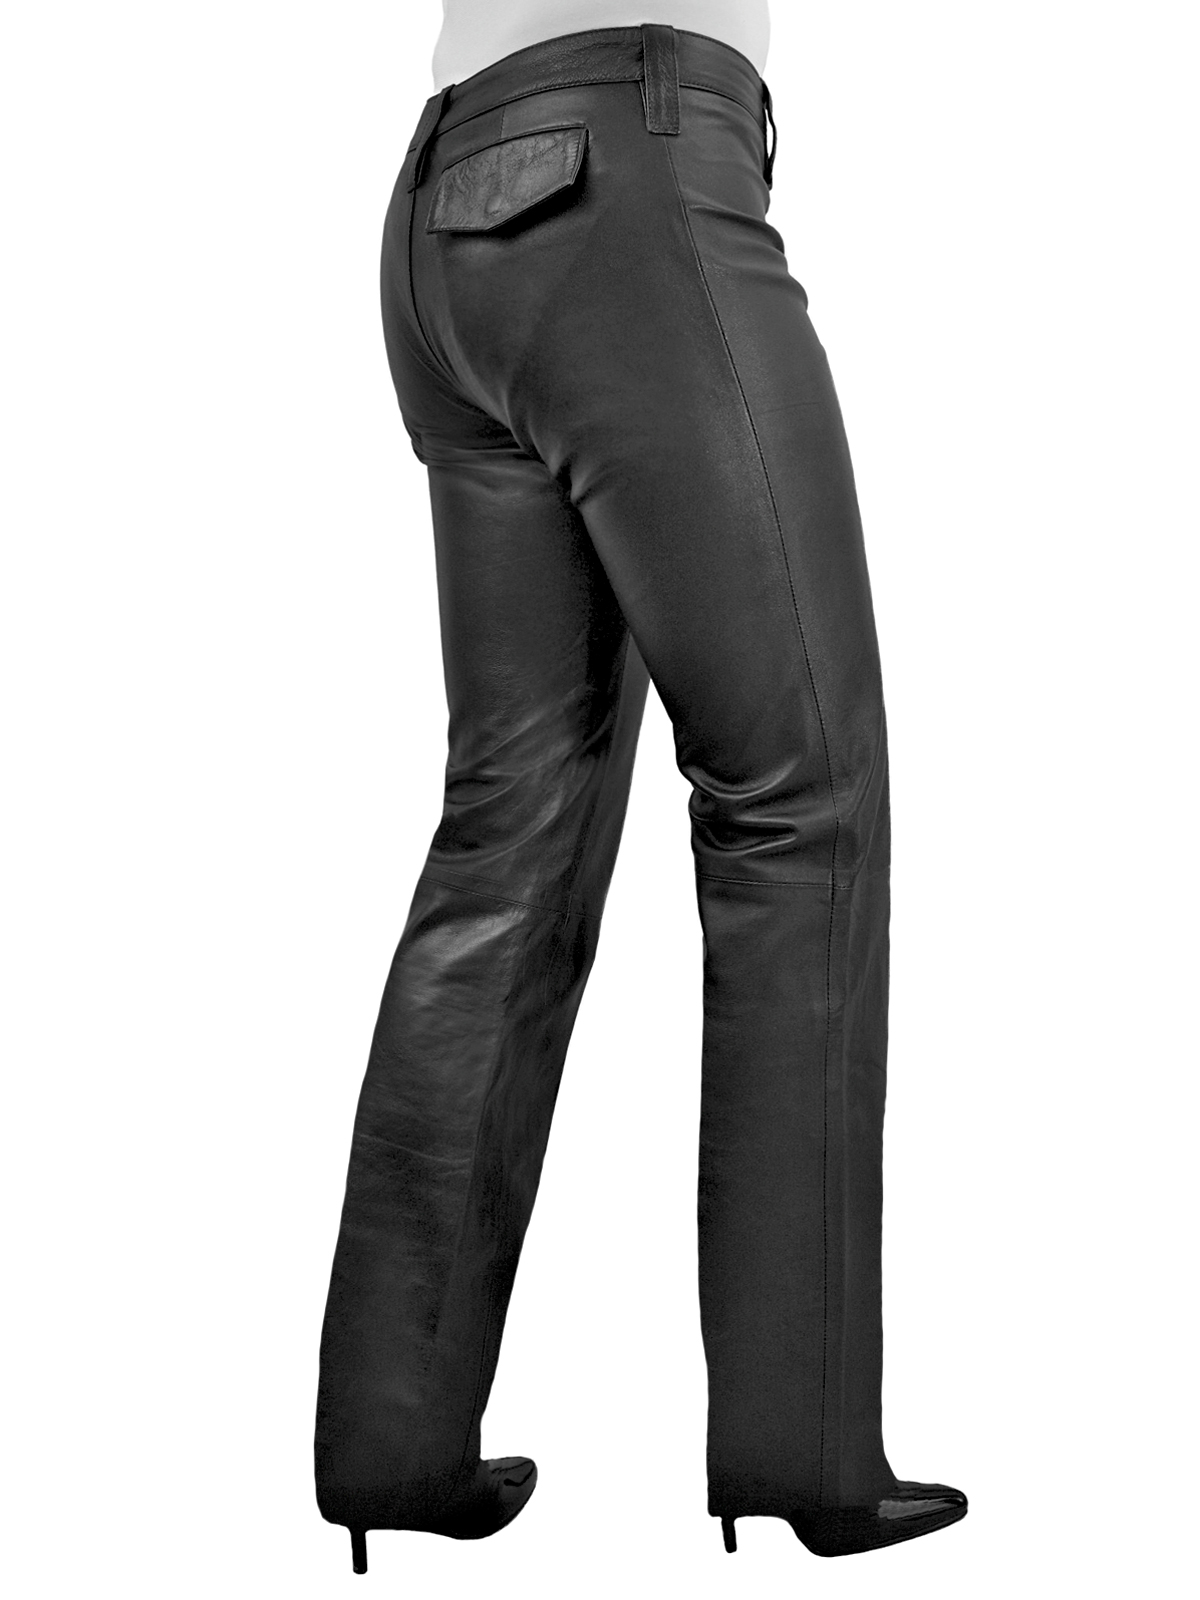 Women's Leather Trousers, mid-rise with straight leg cut, black